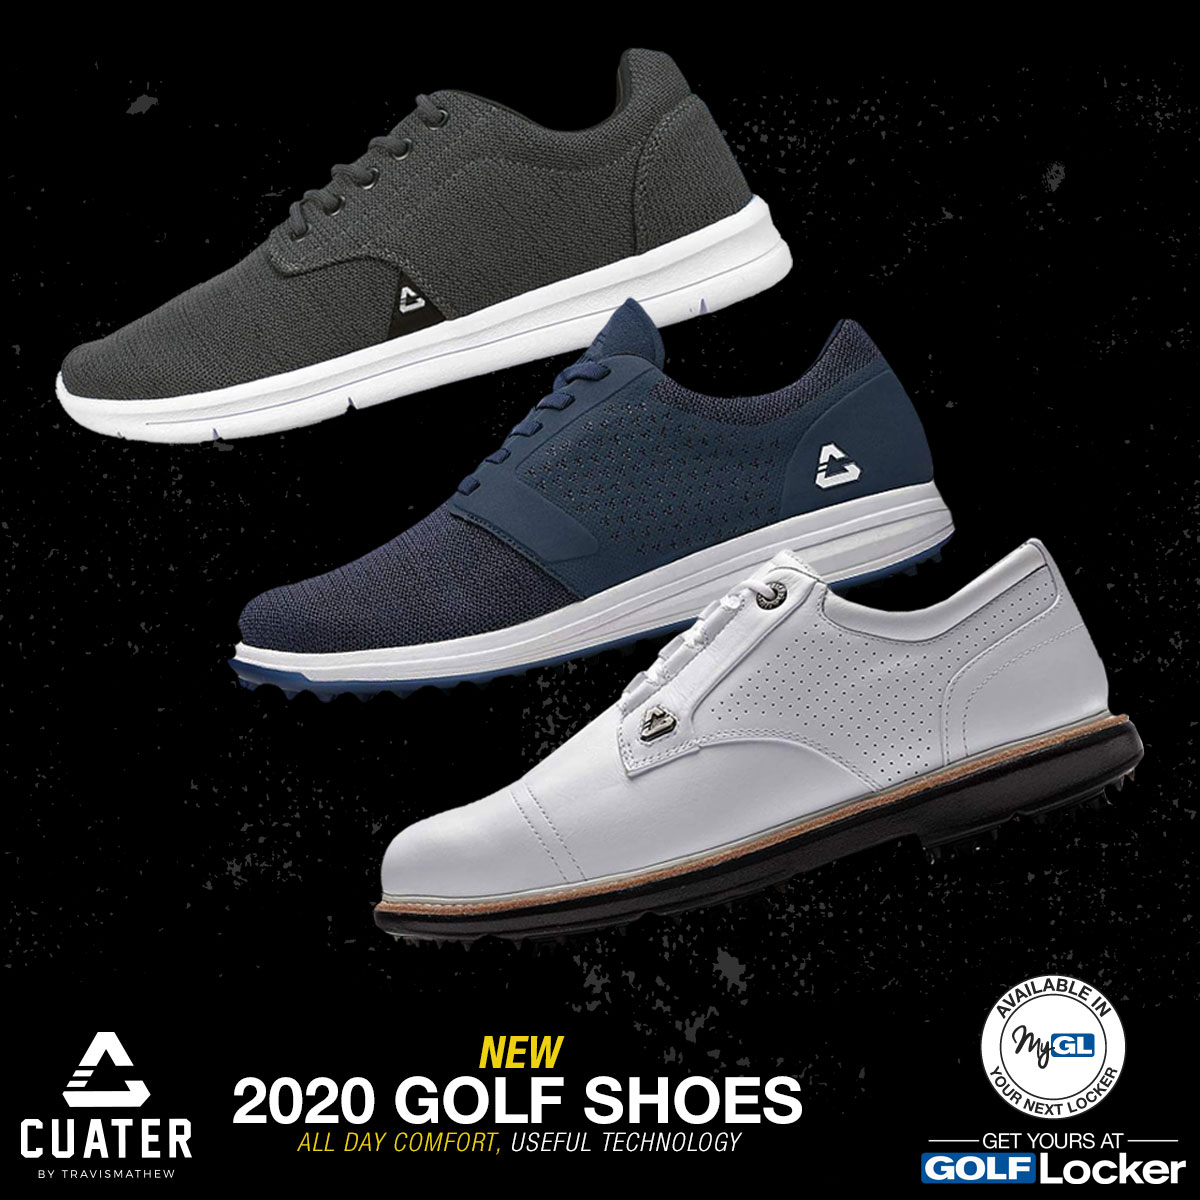 Cuater Golf Shoes at TravisMathew - New for 2020